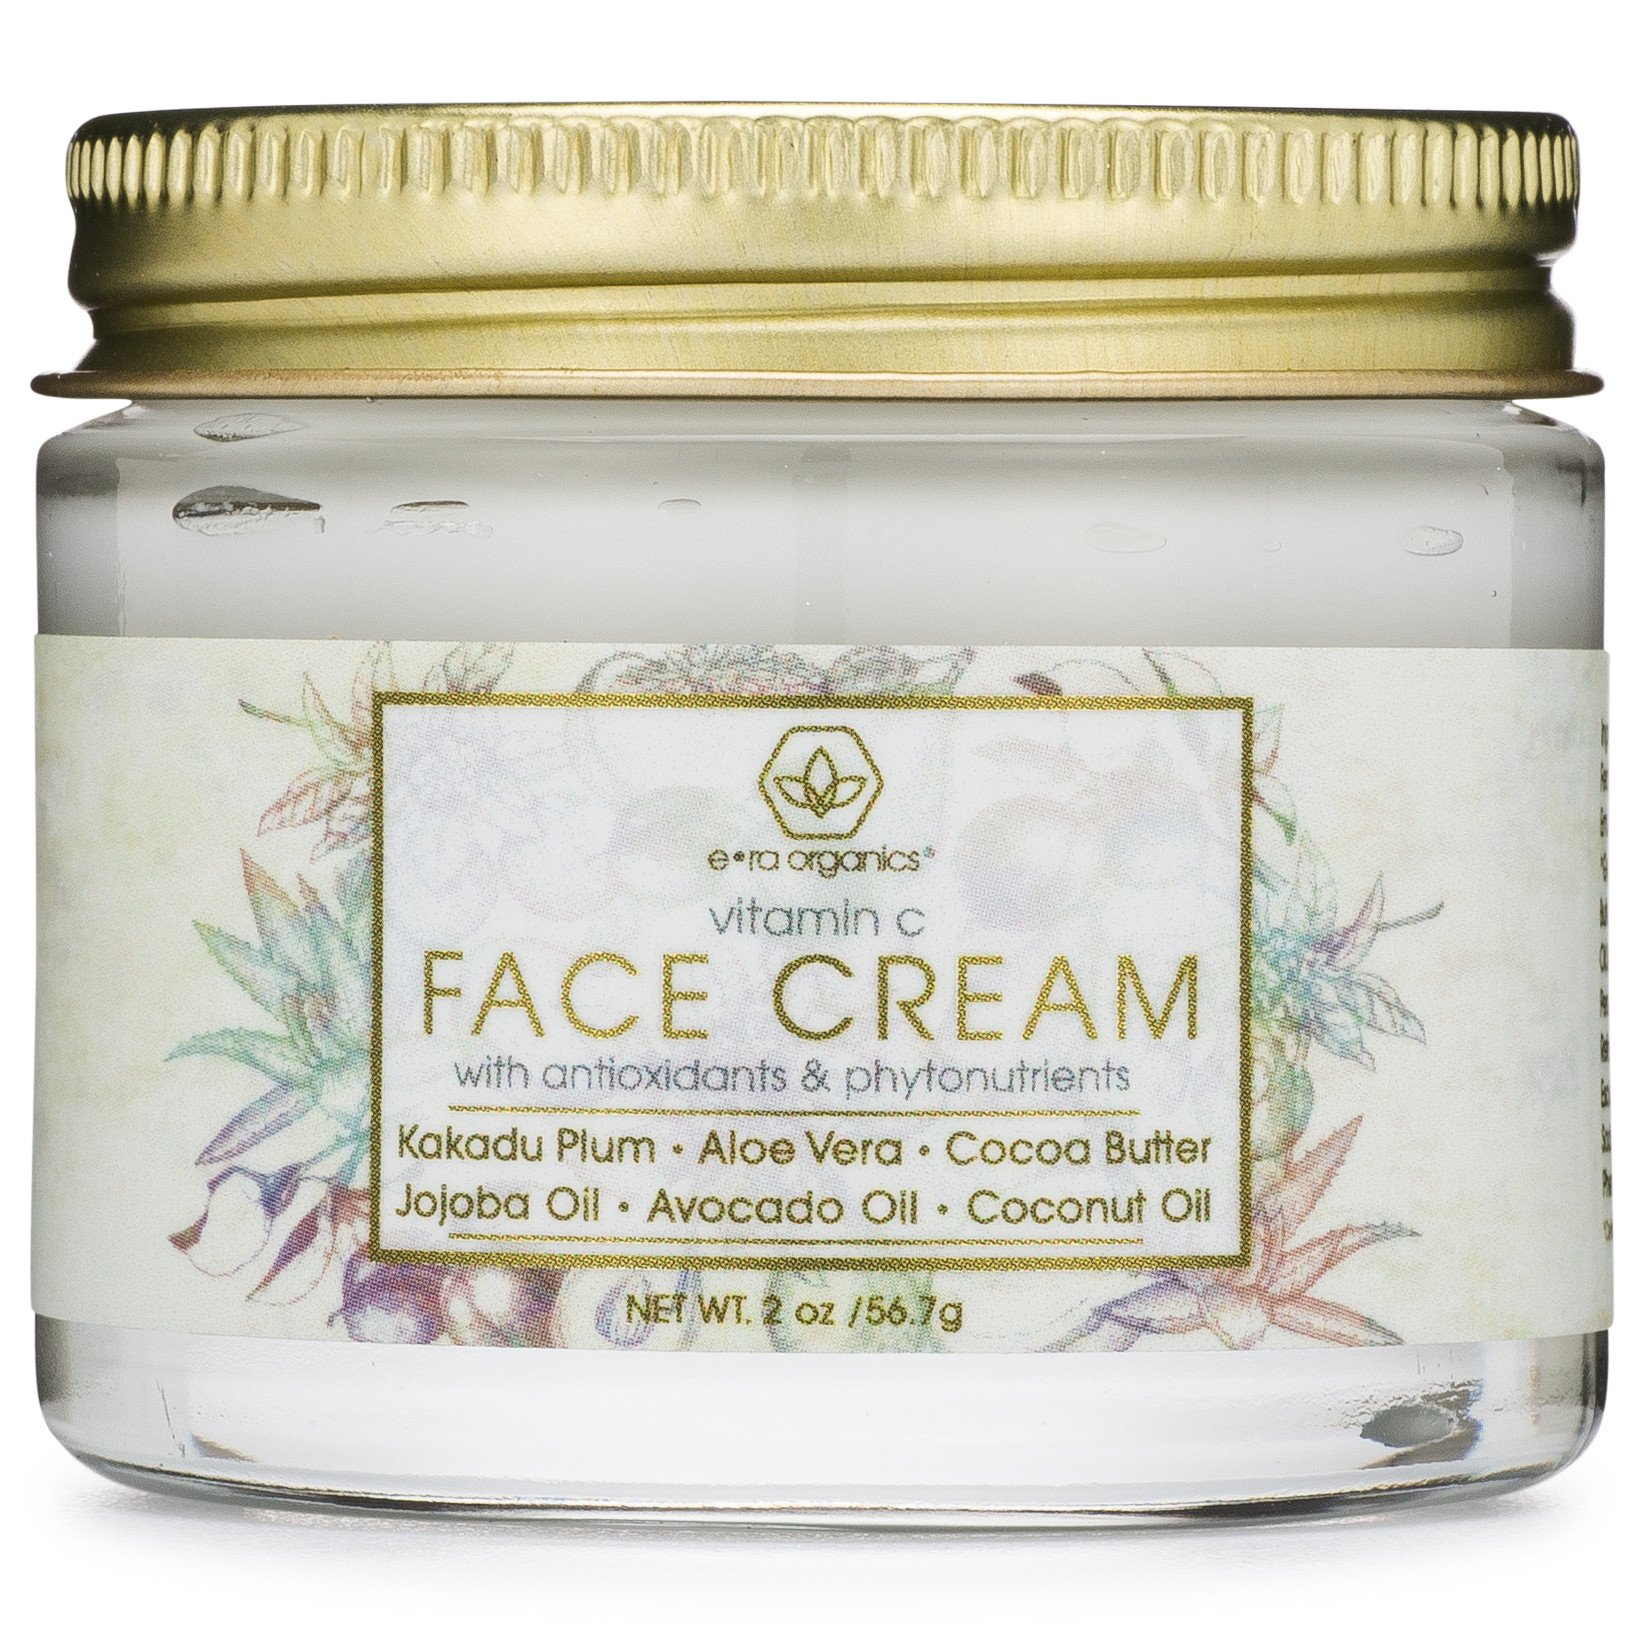 Vitamin C Face & Eye Cream - 2oz Revitalizing Natural Anti Aging Moisturizer With Kakadu Plum, Jojoba Oil, Avocado Oil, Vitamin E for Dry Skin, Wrinkles, Aging, Eye Bags, Dark Circles & Crows Feet